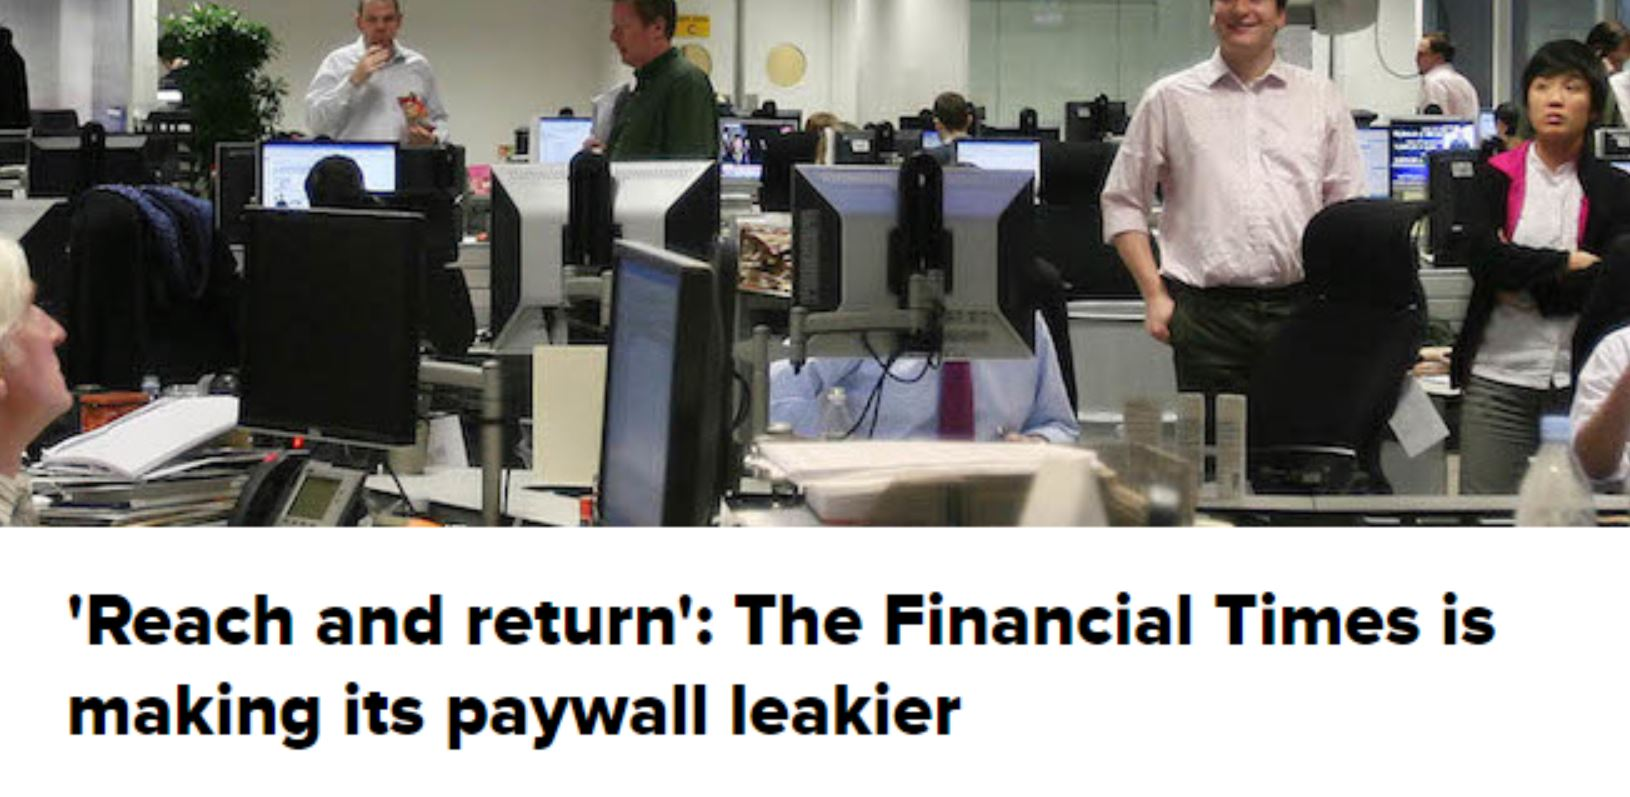 'Reach and return': The Financial Times is making its paywall leakier